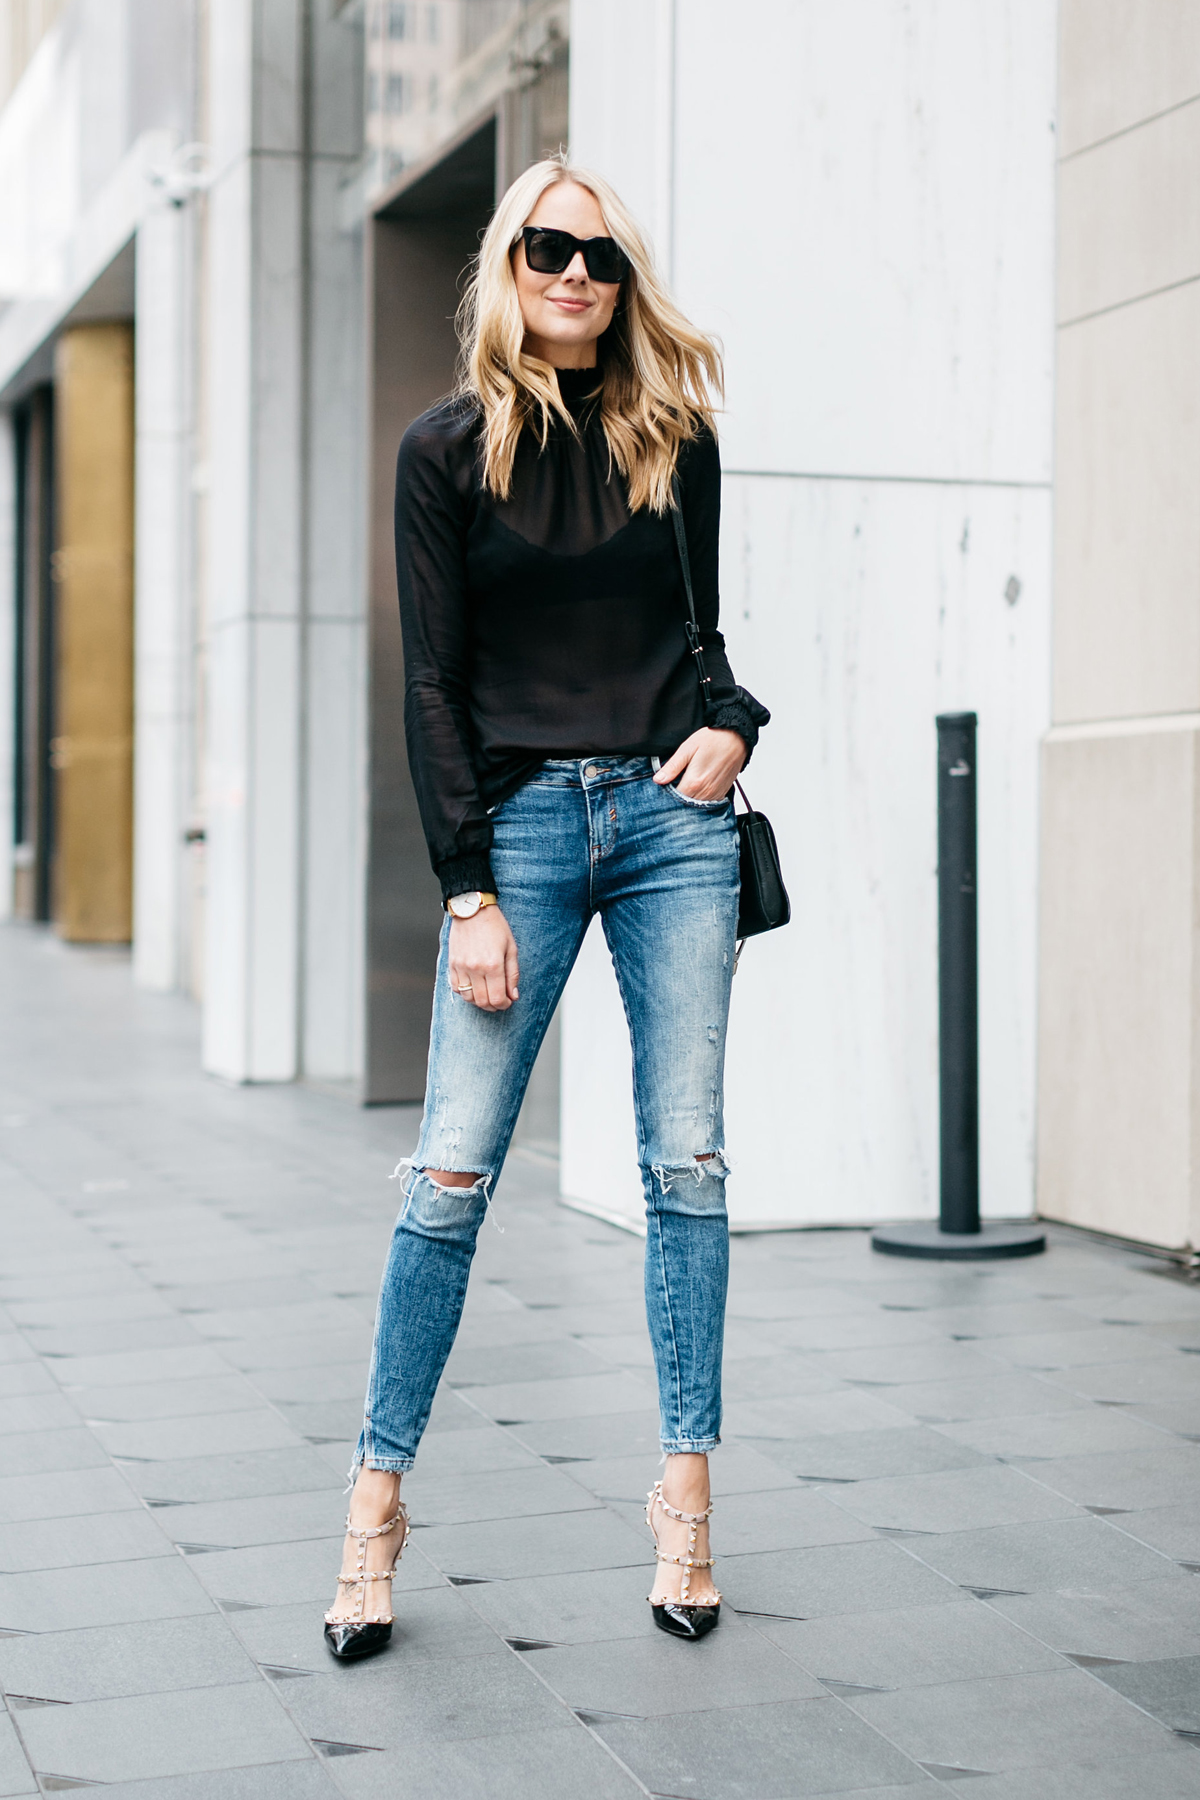 Fall Outfit, Black Long Sleeve Sheer Top, Denim Ripped Skinny Jeans, Chloe Faye Handbag, Valentino Rockstud Black Pumps